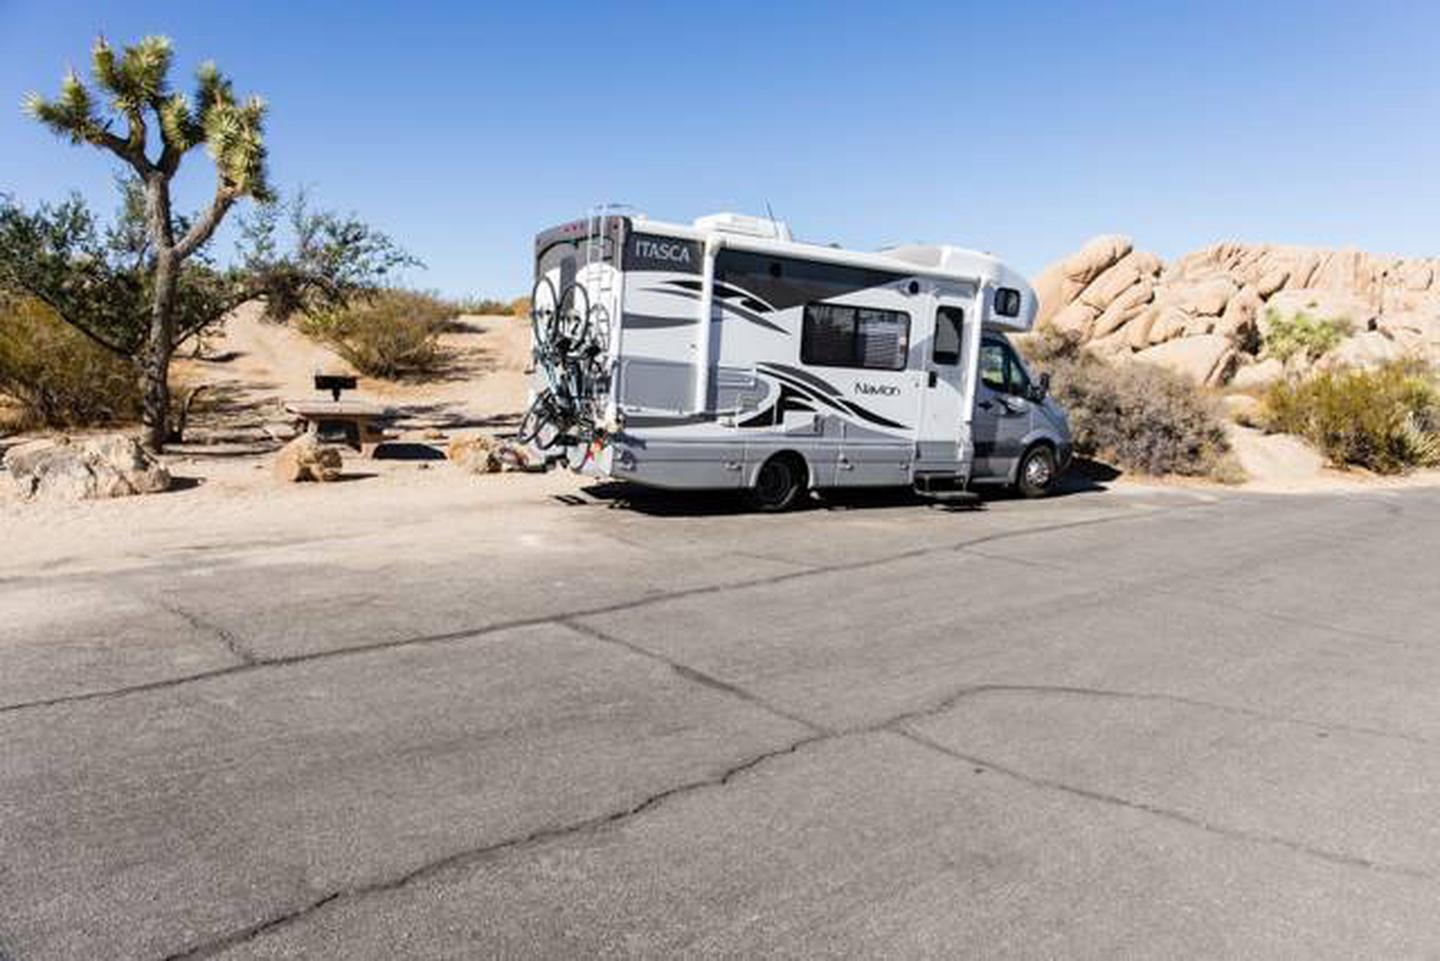 Jumbo Rocks site 35Parking space for campsite